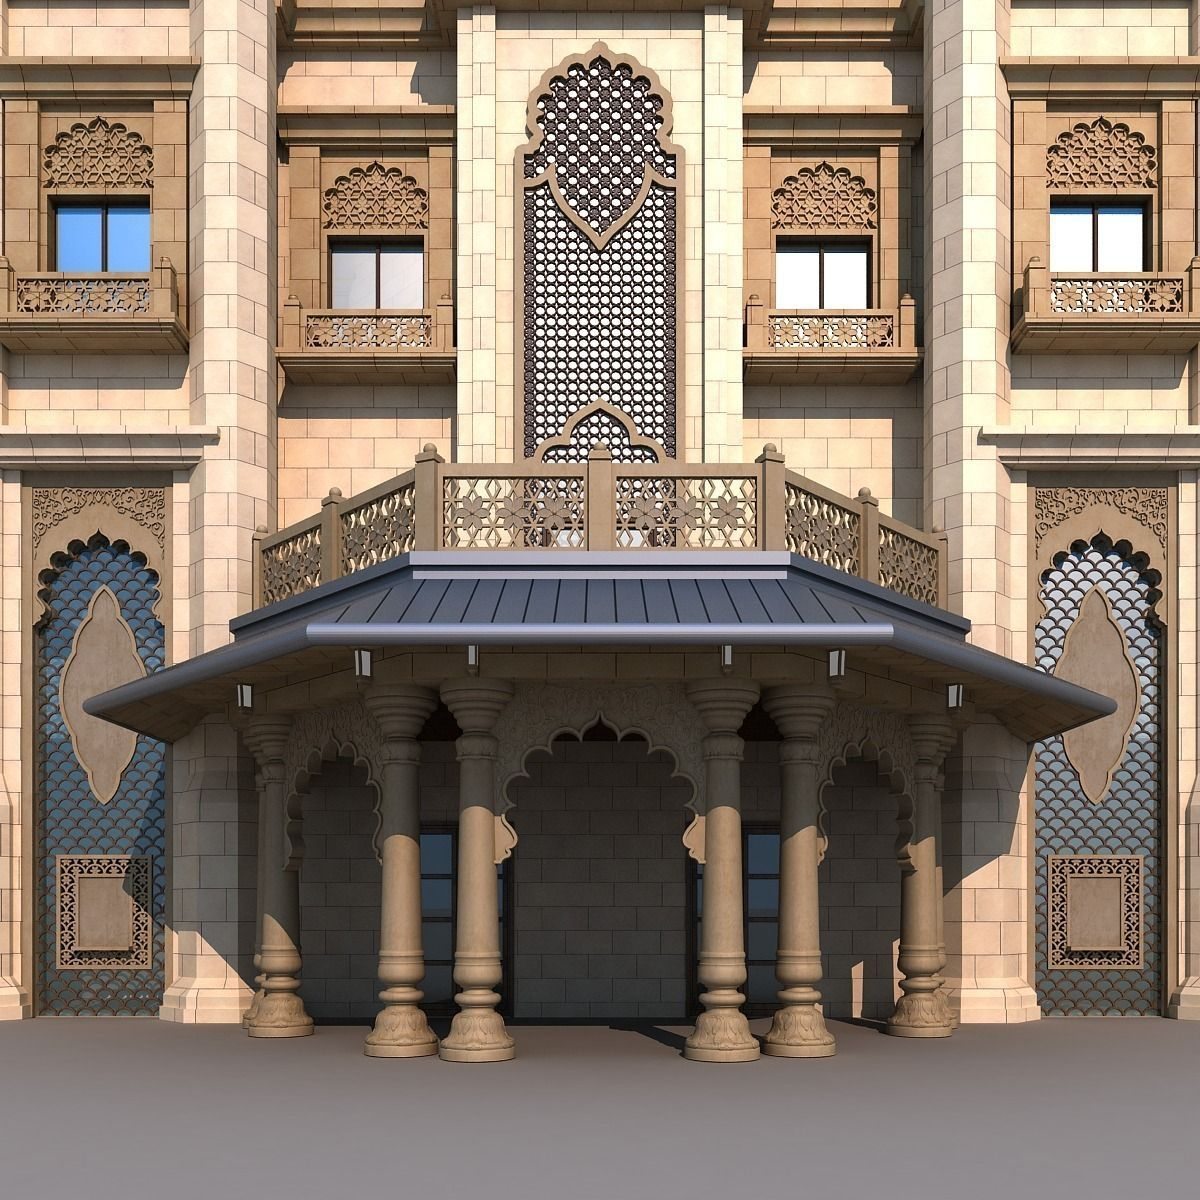 Arch 3d Model Free Download